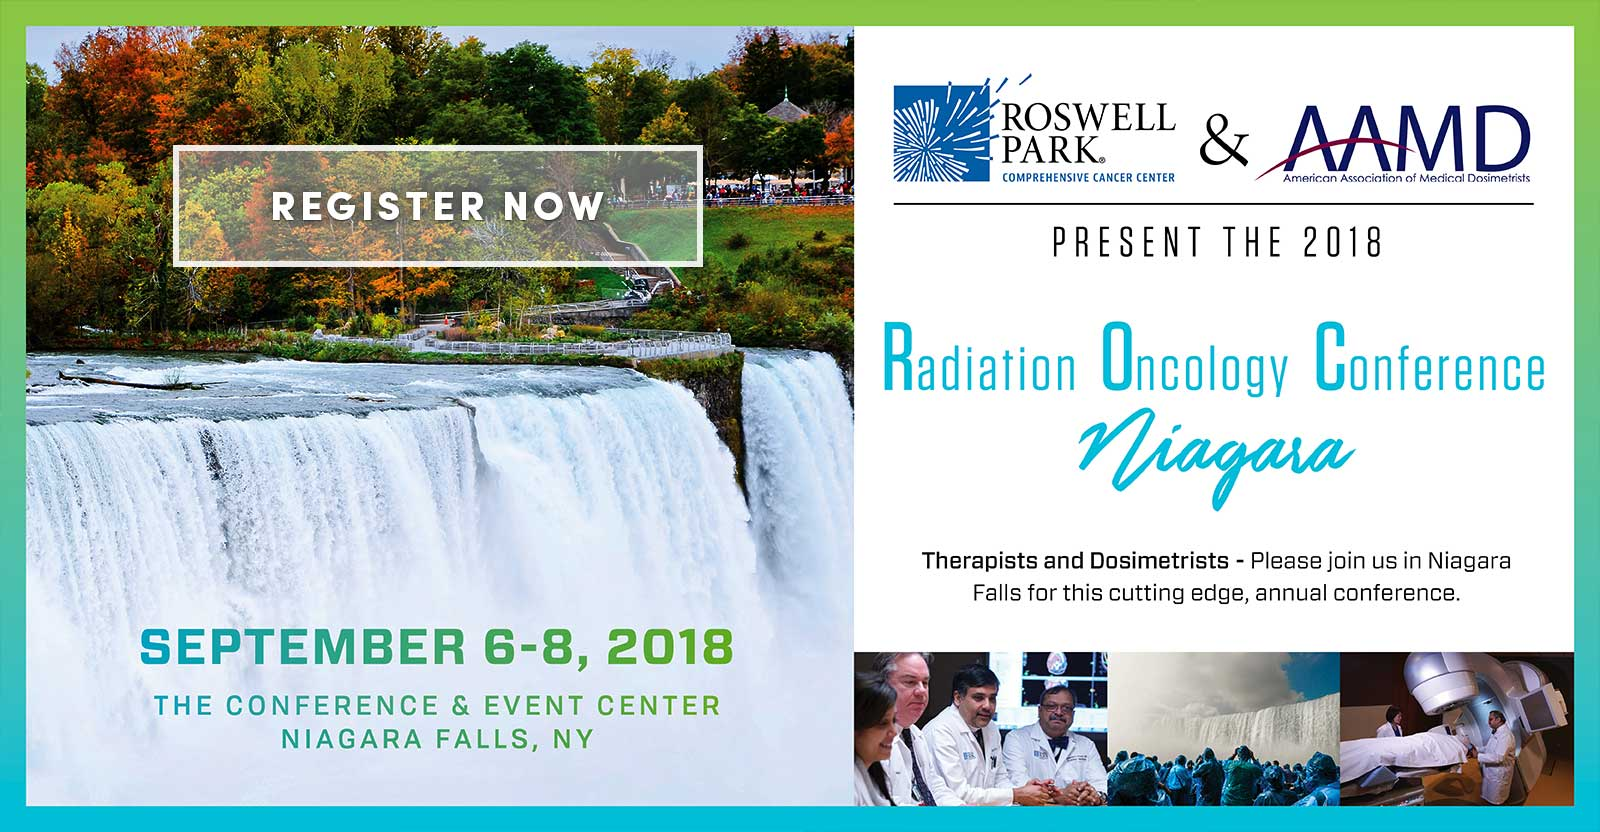 Radiation Oncology Conference